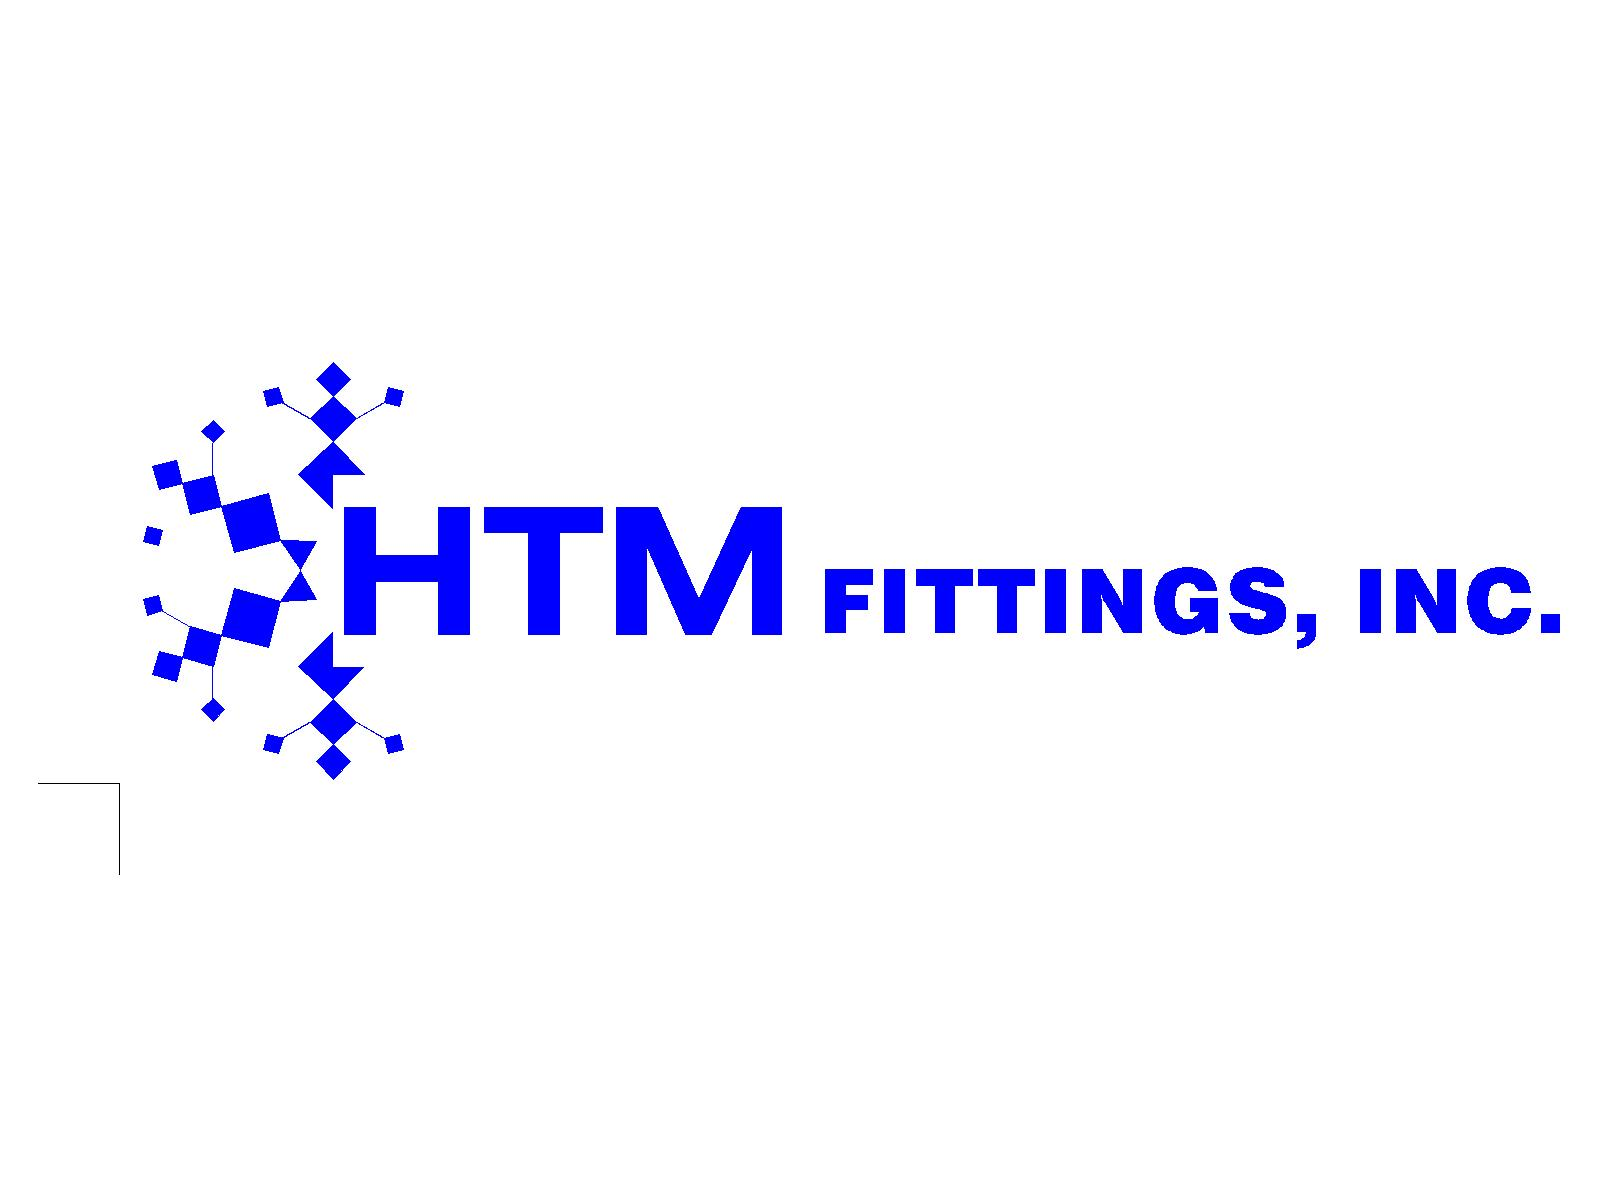 HTM FITTINGS